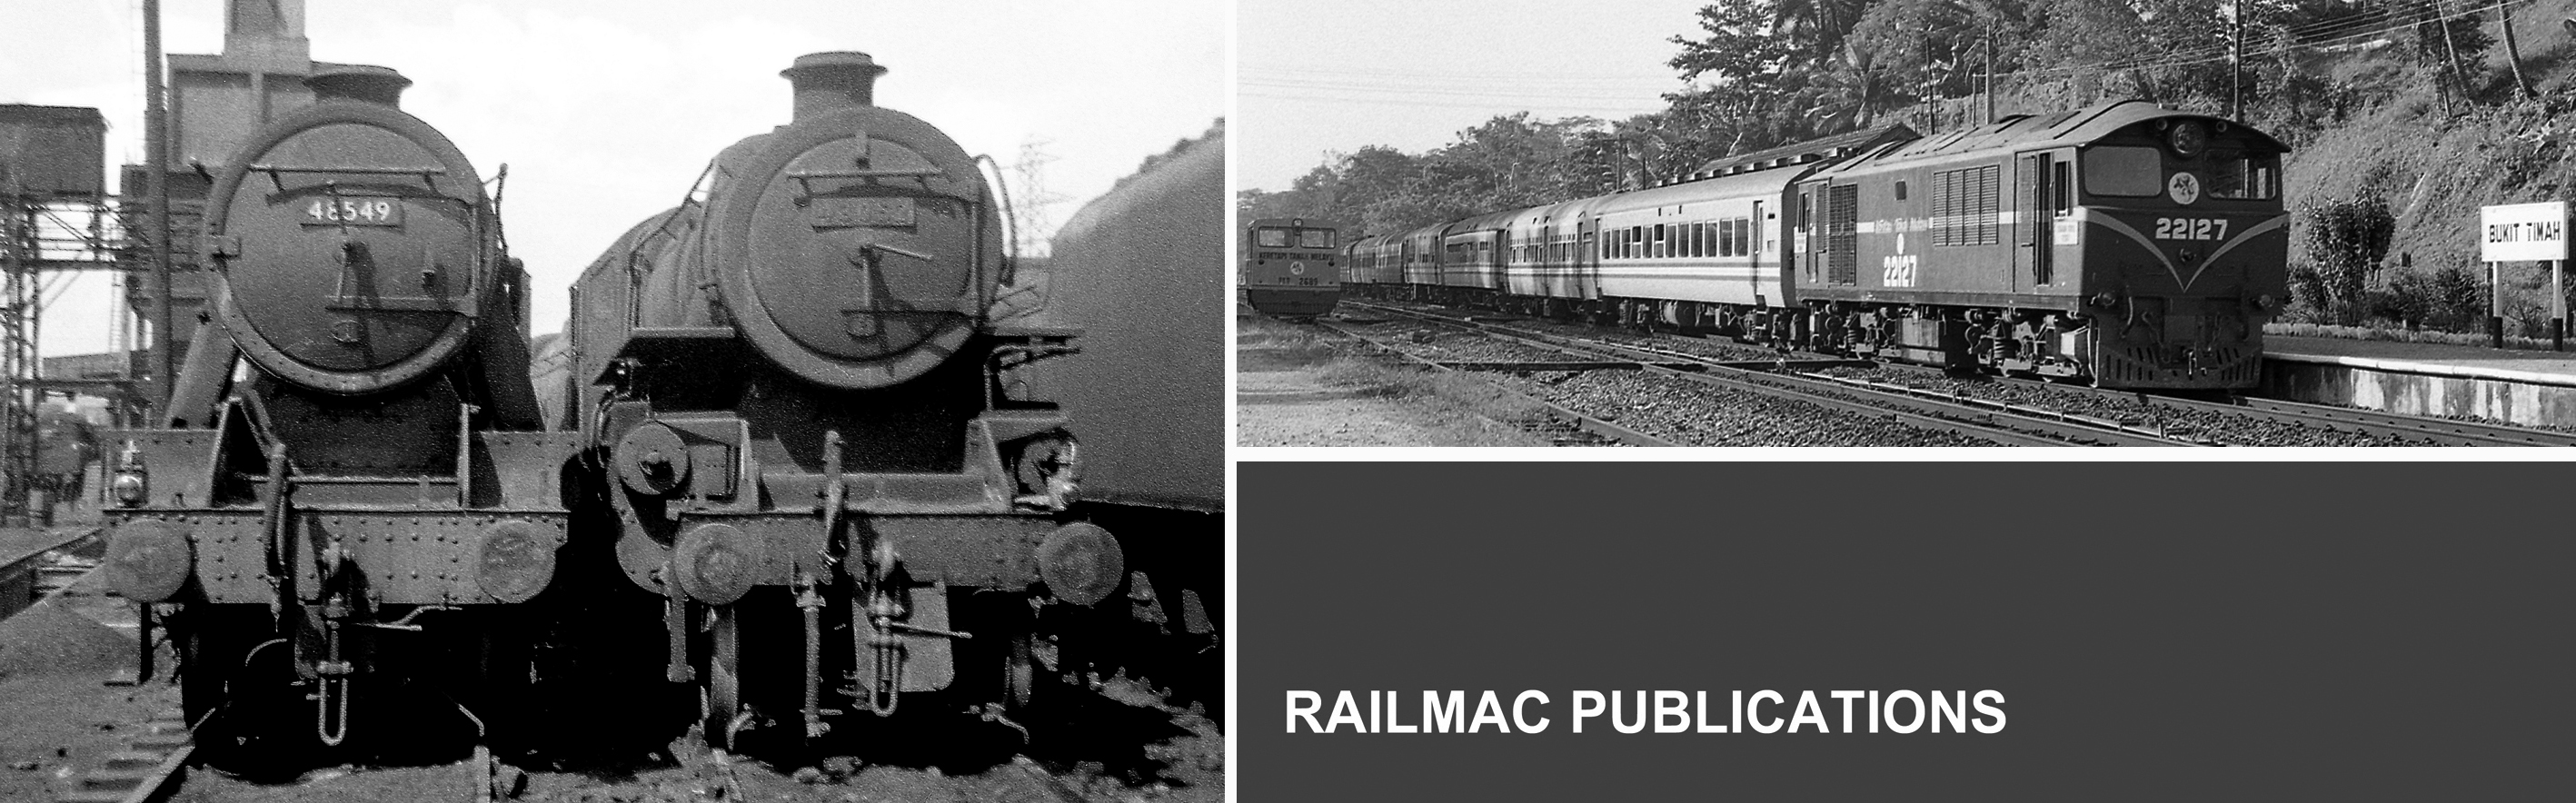 Railmac Publications